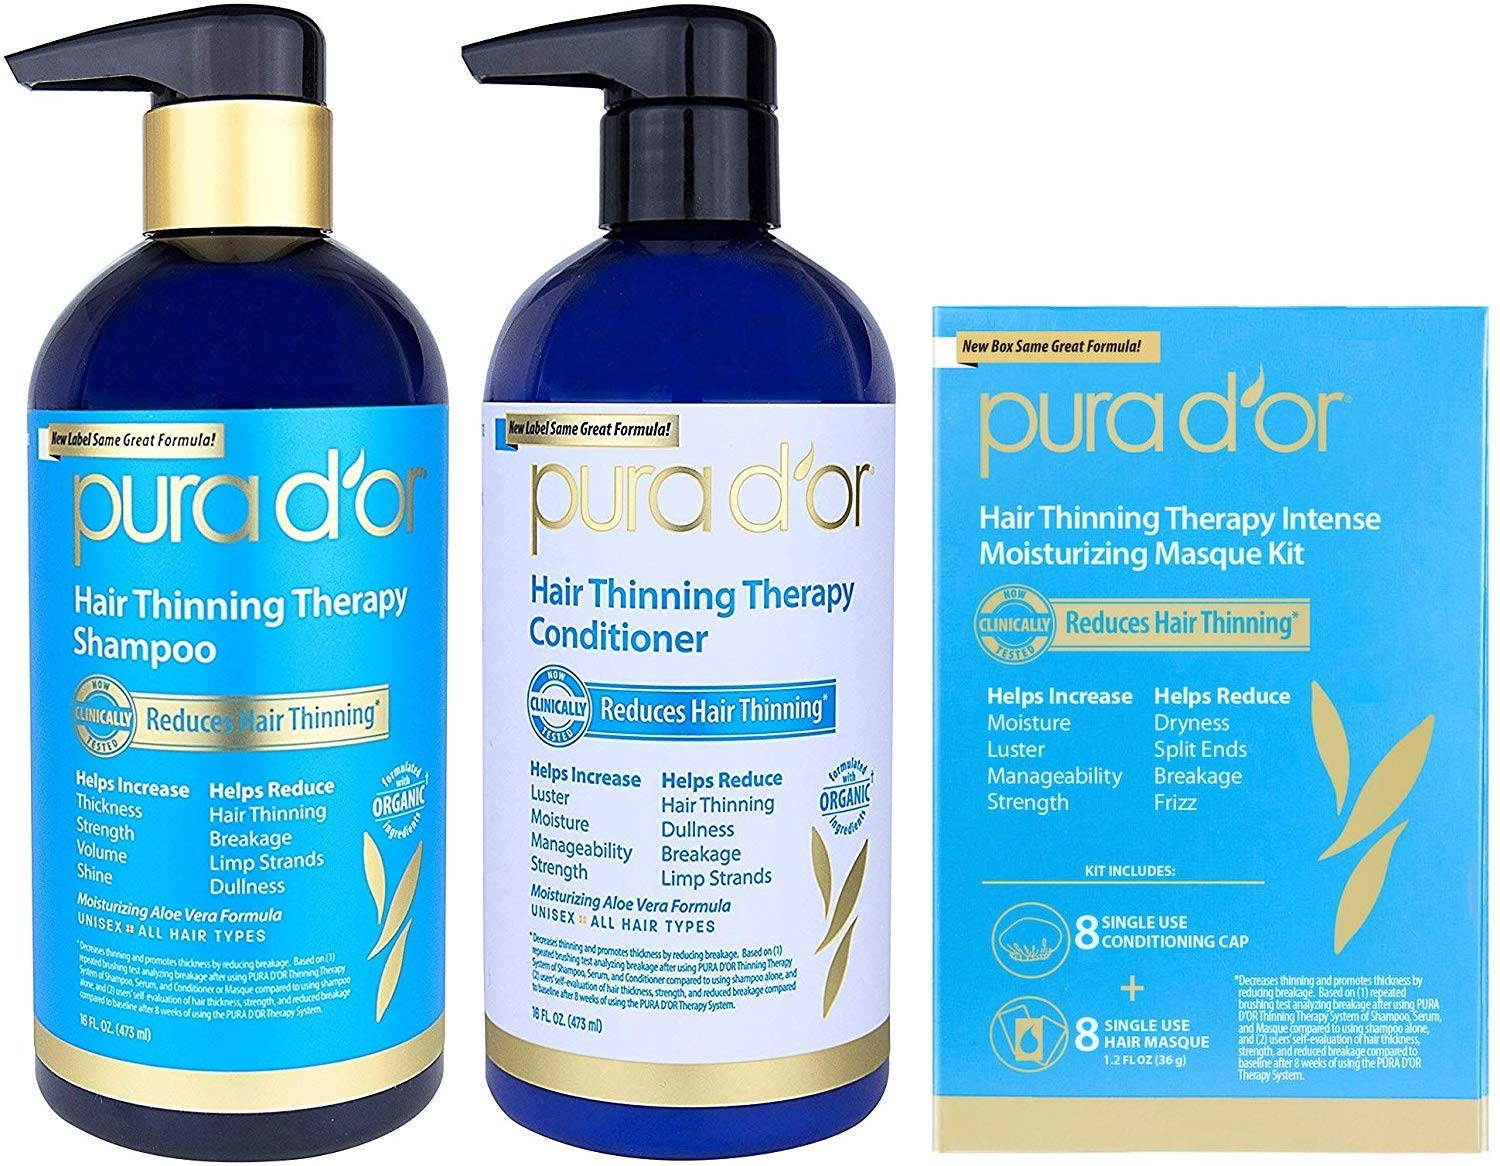 Pura Dor Hair Thinning Therapy Shampoo Vanilla Amoreskin Forfifying Lavender For Prevention Infused With Argan Oil Biotin Natural Ingredients